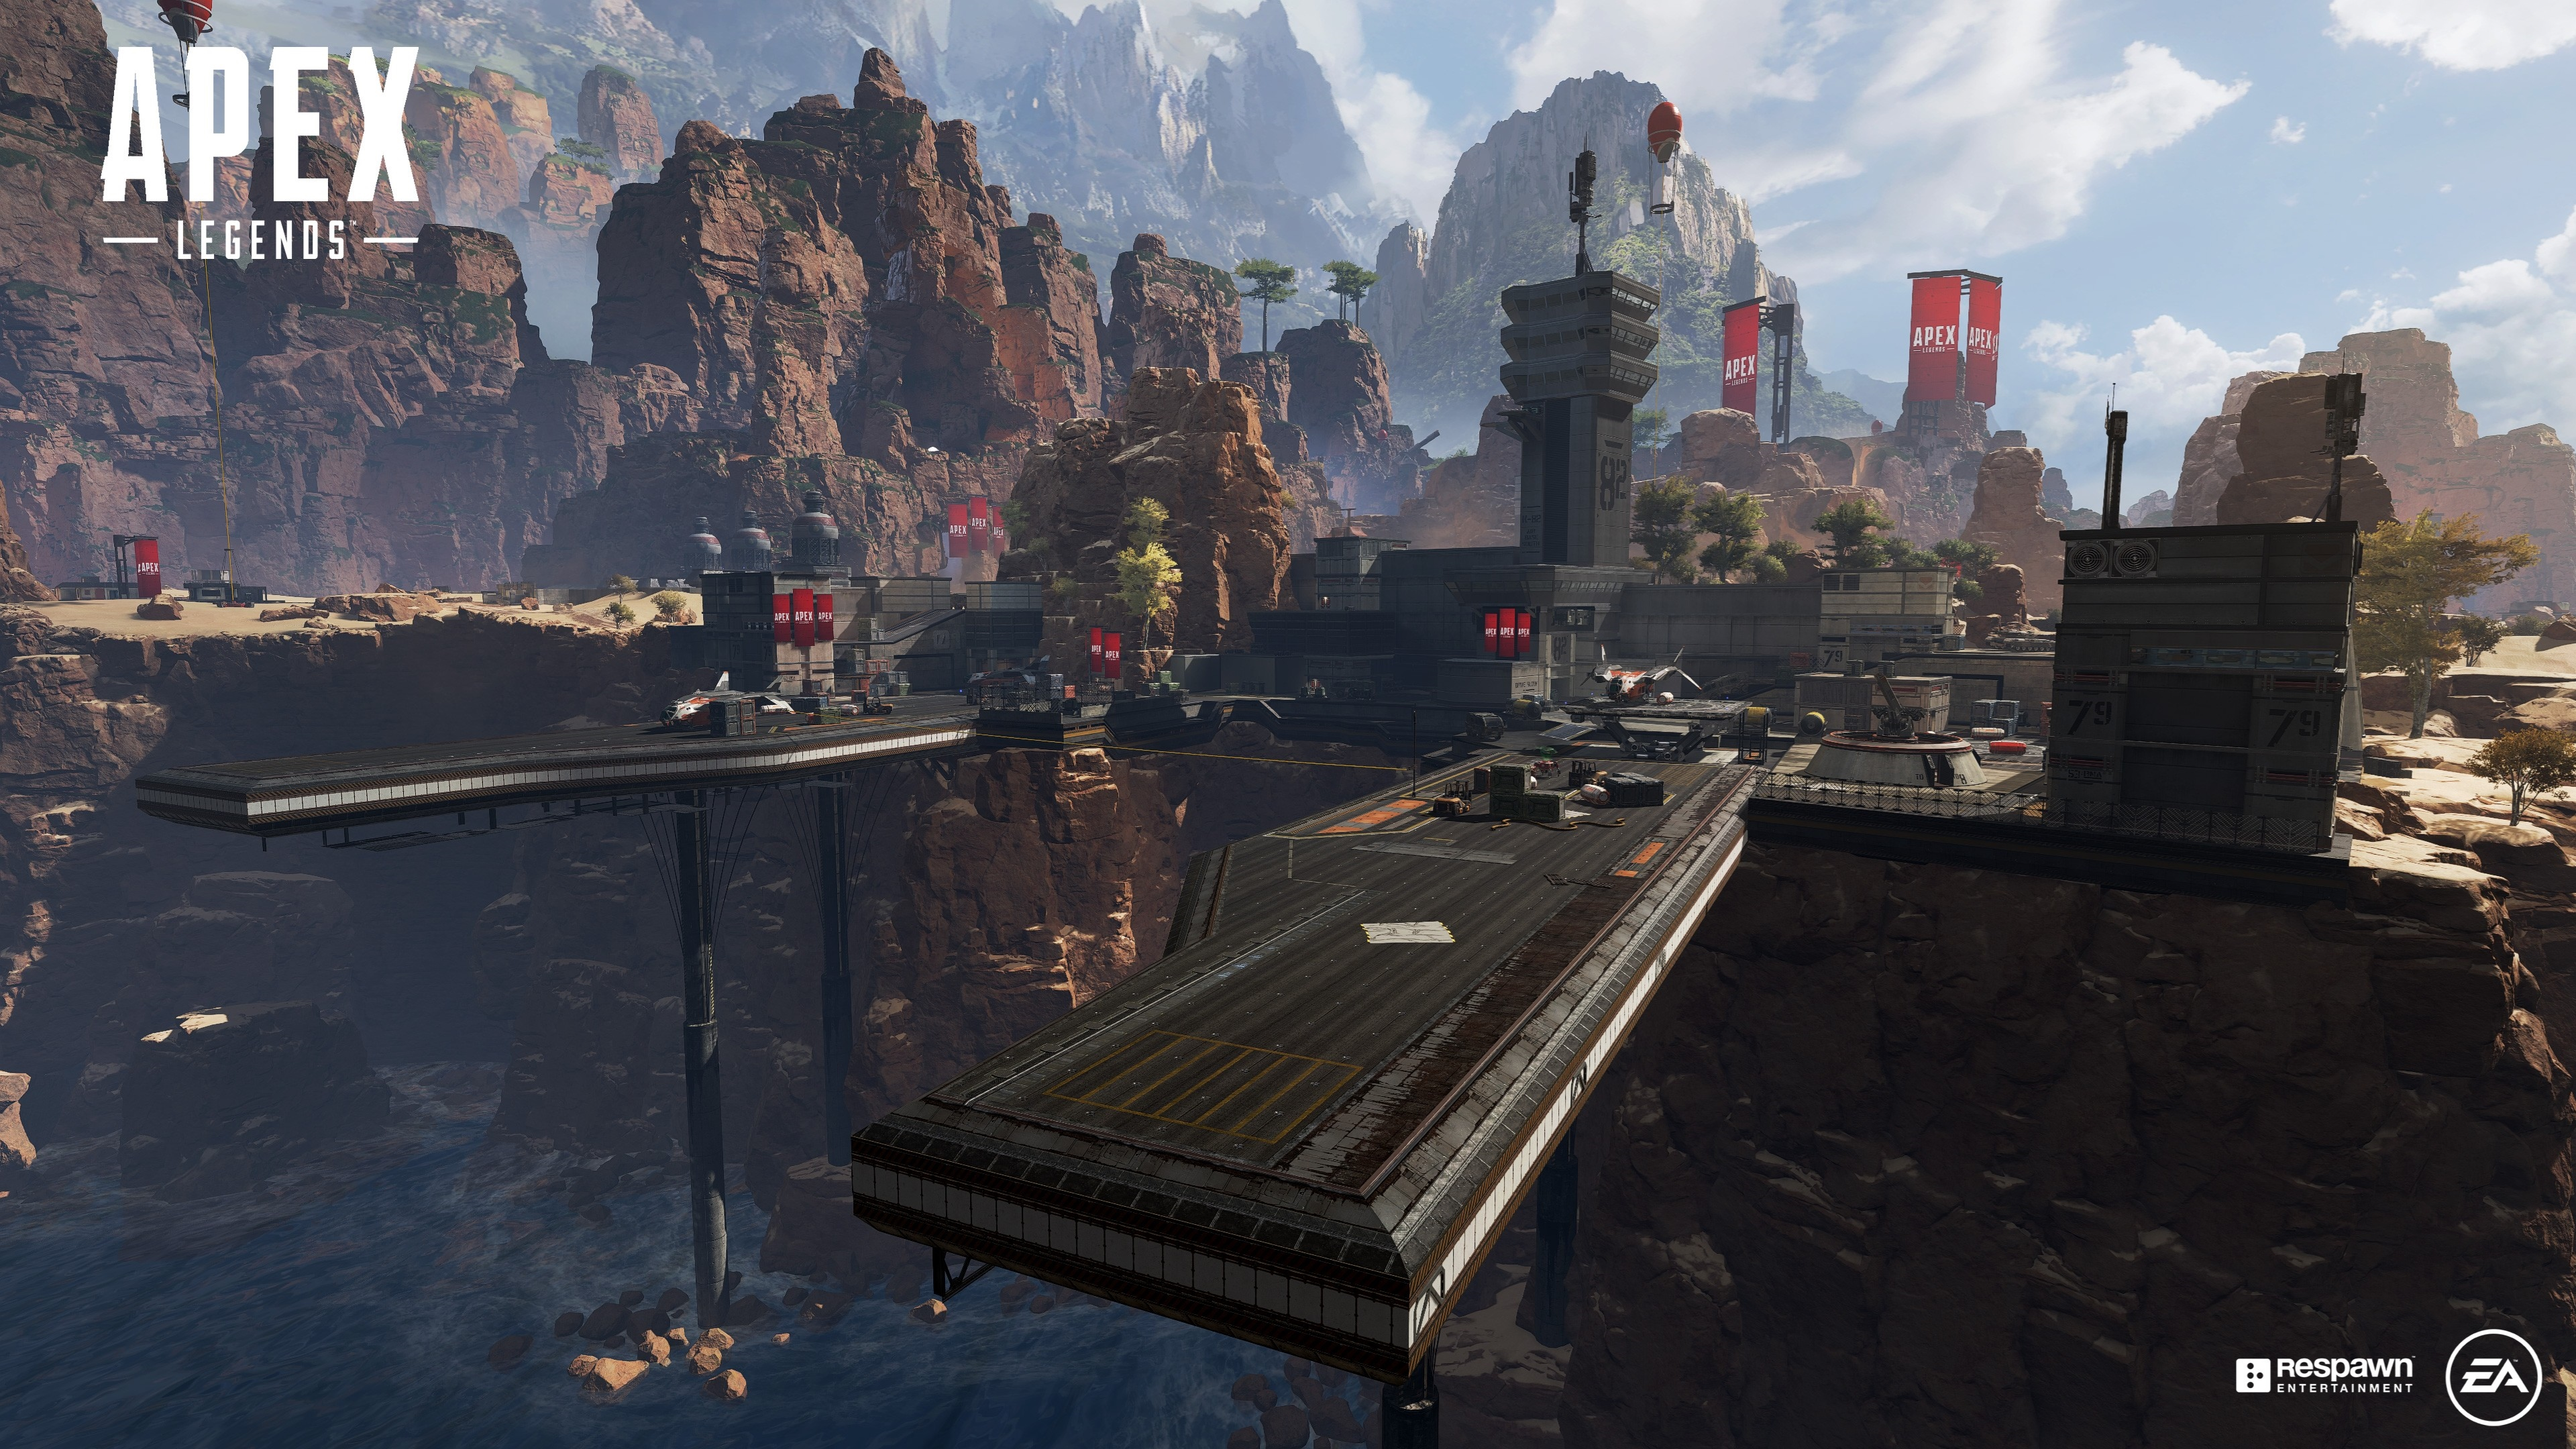 990981 - Apex Legends Airbase 4k - Apex wallpaper 4k 2019, Apex phone wallpaper hd 4k, Apex legends wallpaper phone, Apex legends wallpaper hd 4kwallpaper, Apex Legends maps airbase 4k wallpaper, apex legends characters wallpaper hd 4k, Apex legends background hd 4k wallpaper, Apex Legends 4k wallpaper